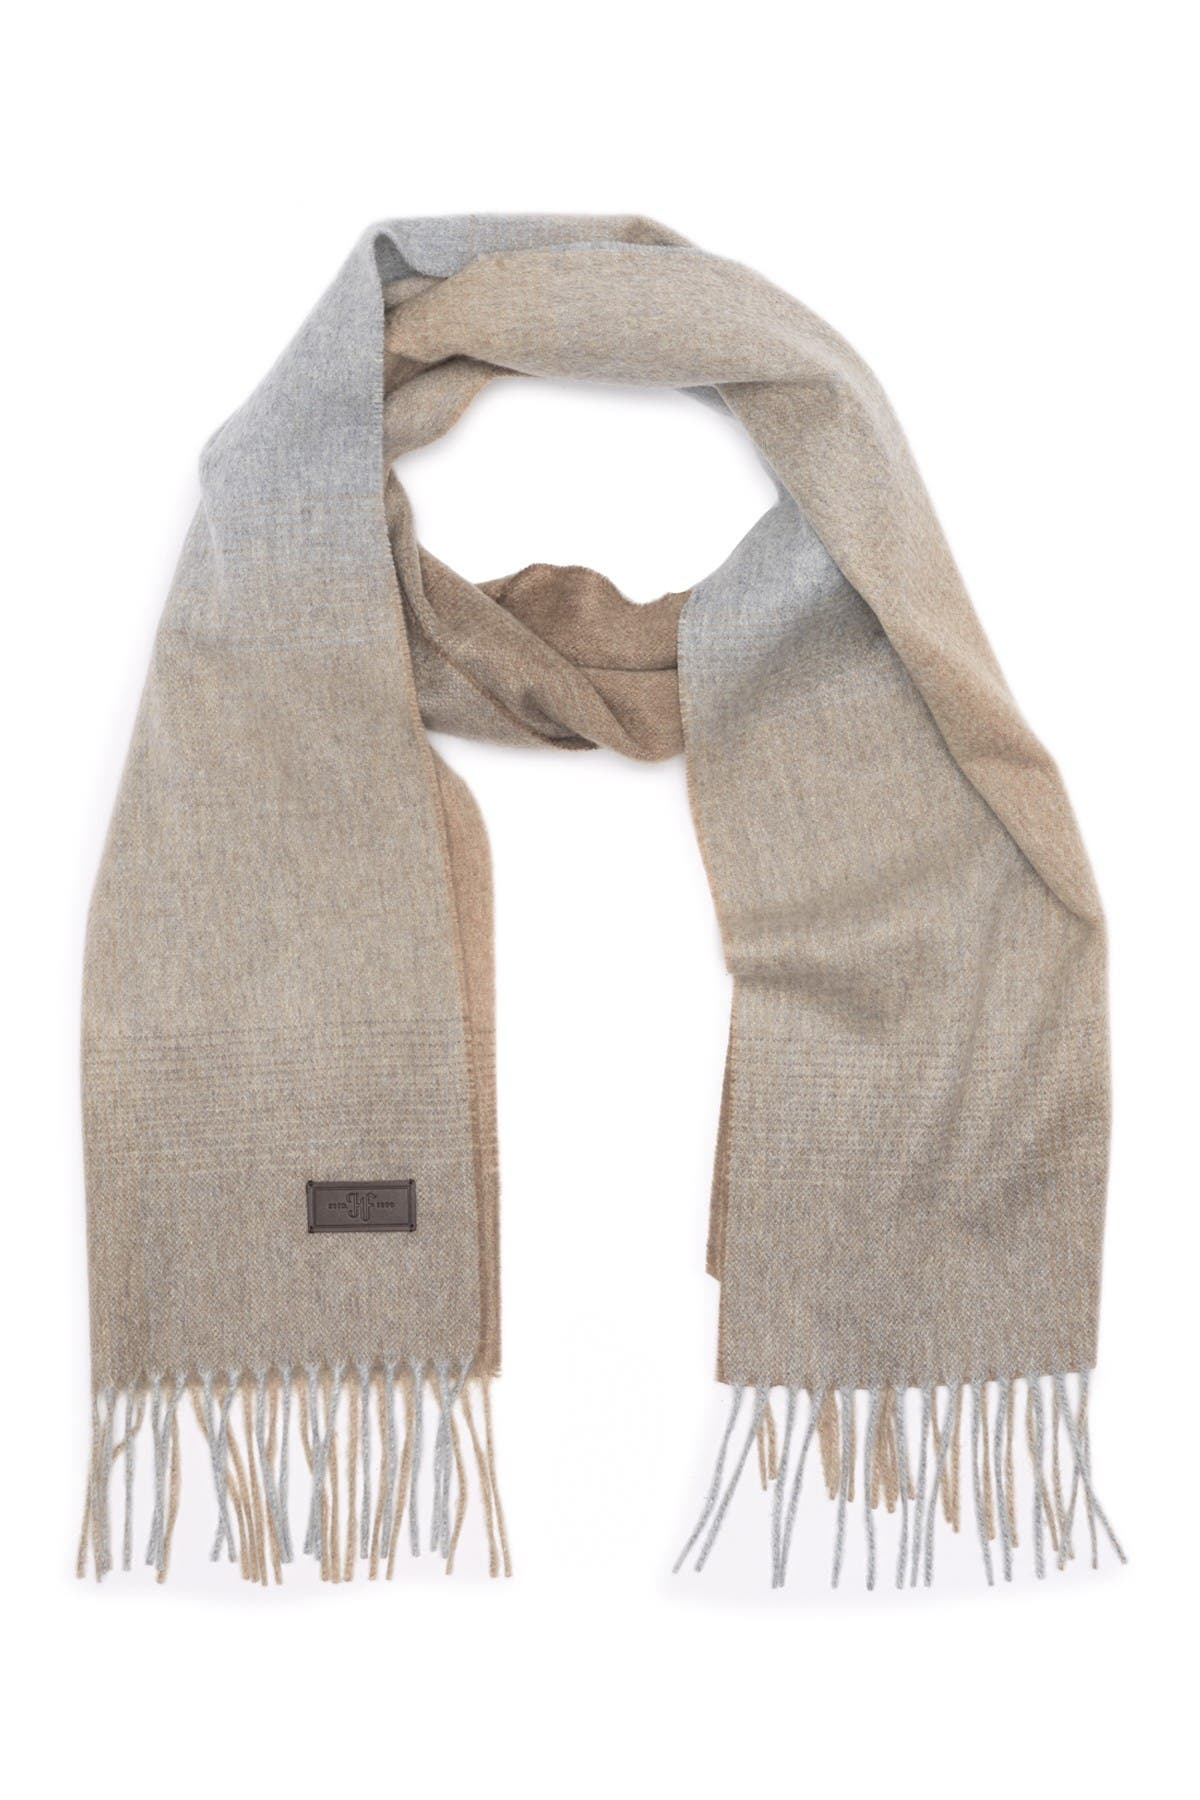 Image of Hickey Freeman Cashmere Ombre Scarf